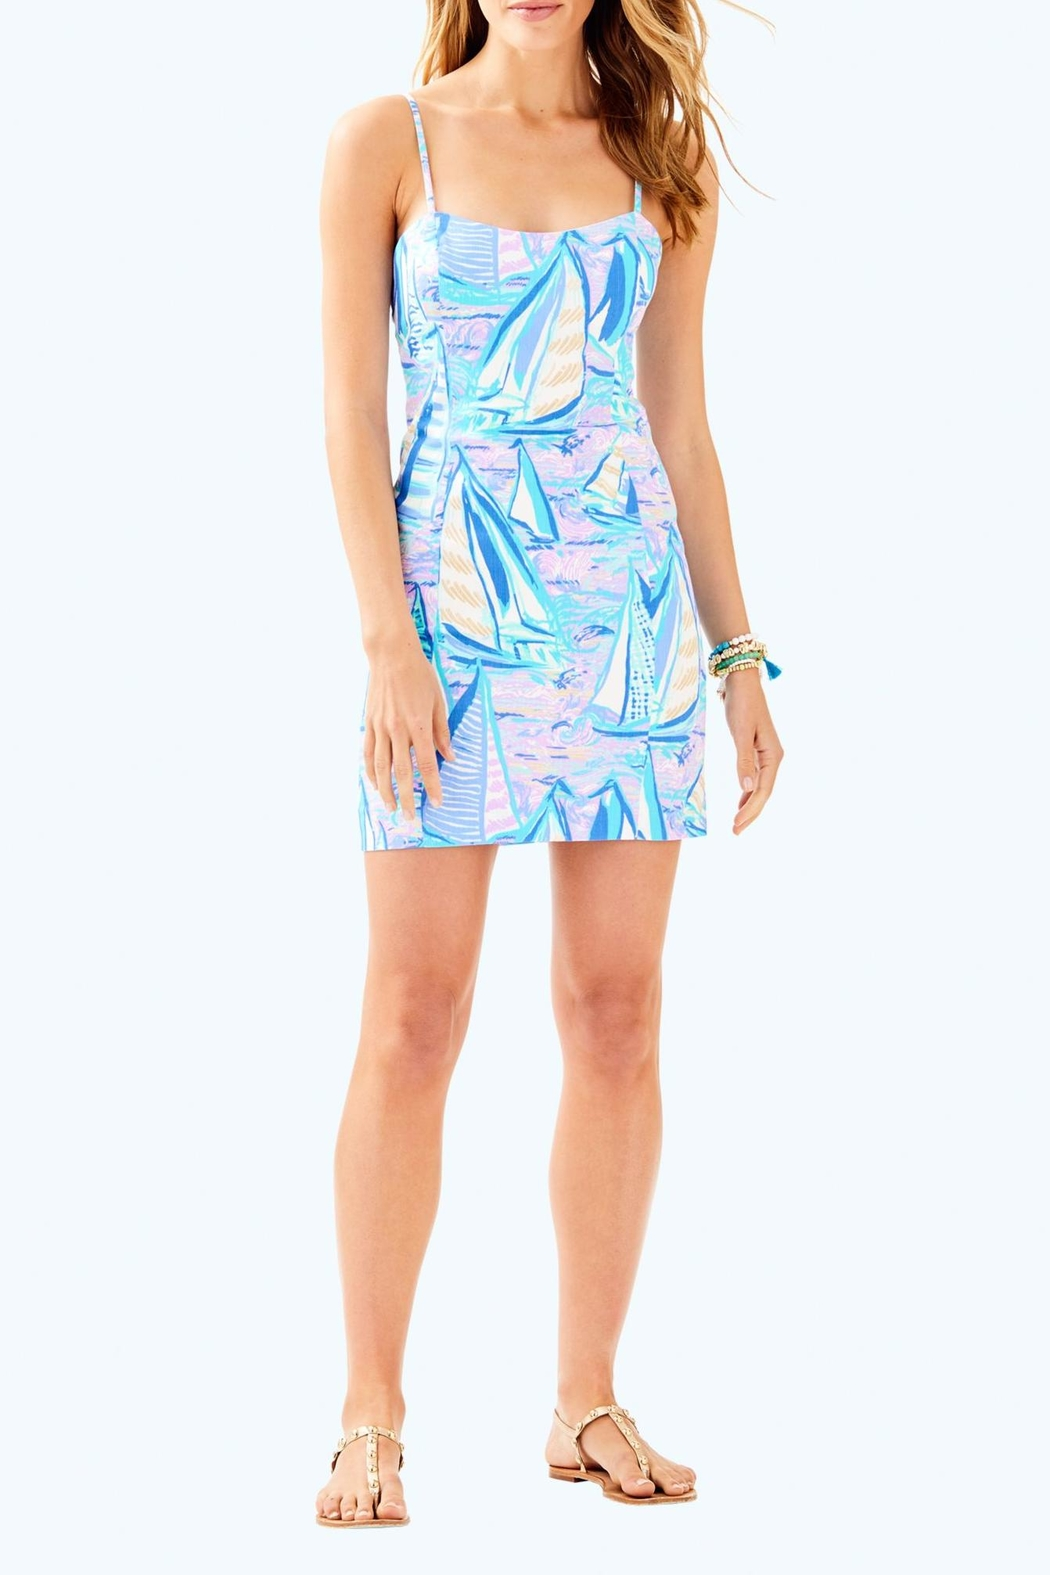 Lilly Pulitzer Shelli Stretch Dress - Back Cropped Image